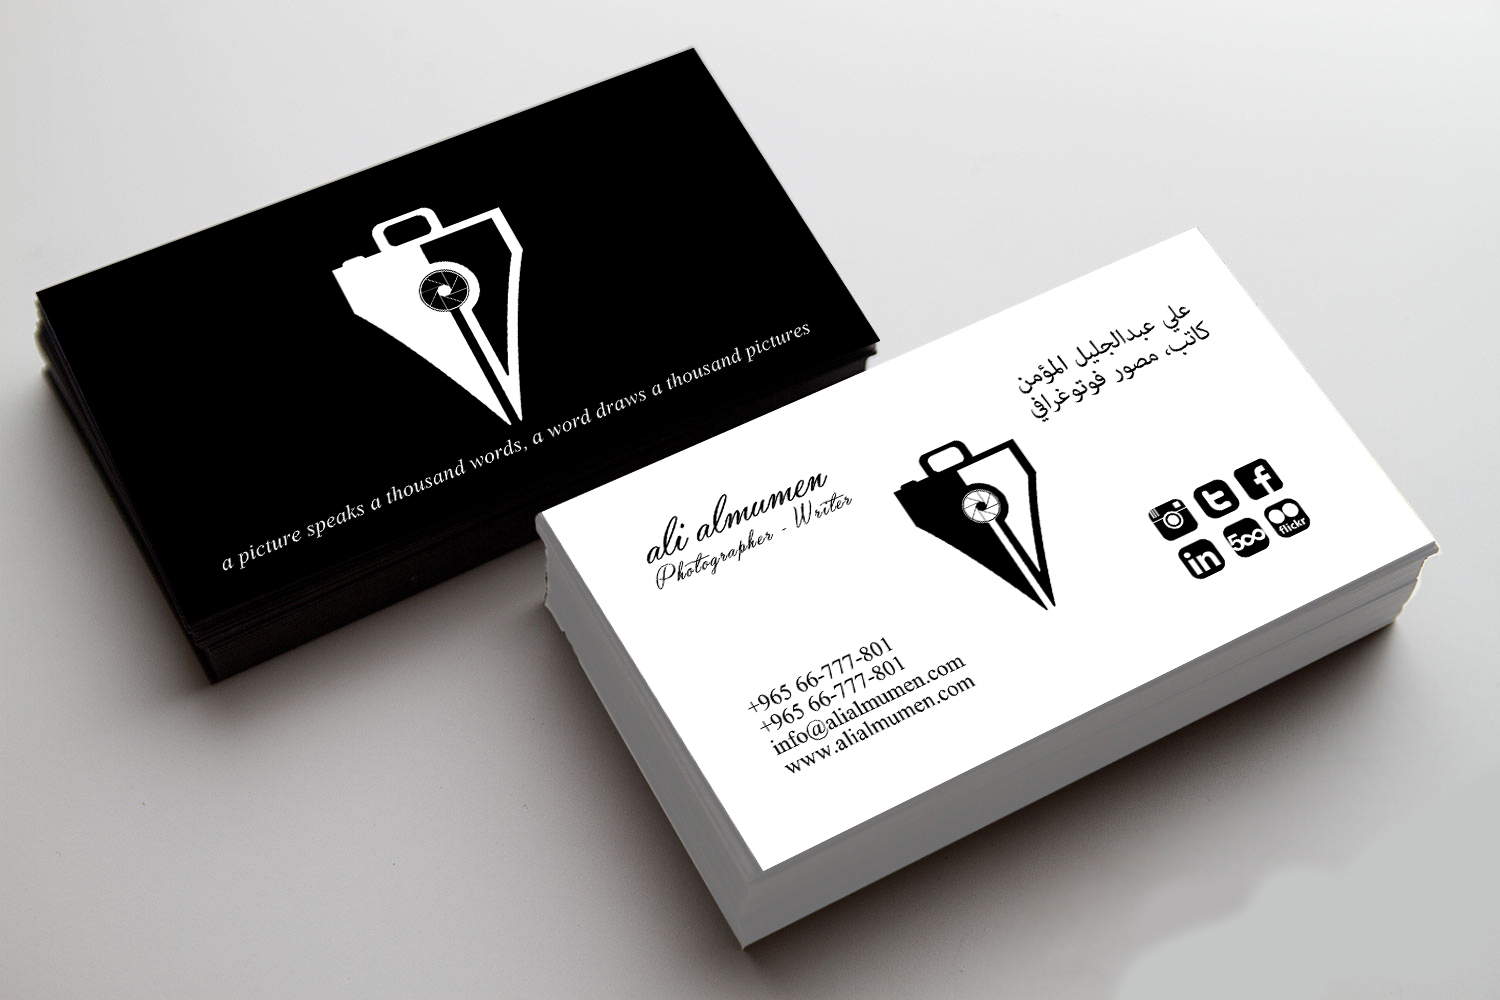 Print business cards kuwait image collections card design and card other ebooks library of print business cards kuwait reheart